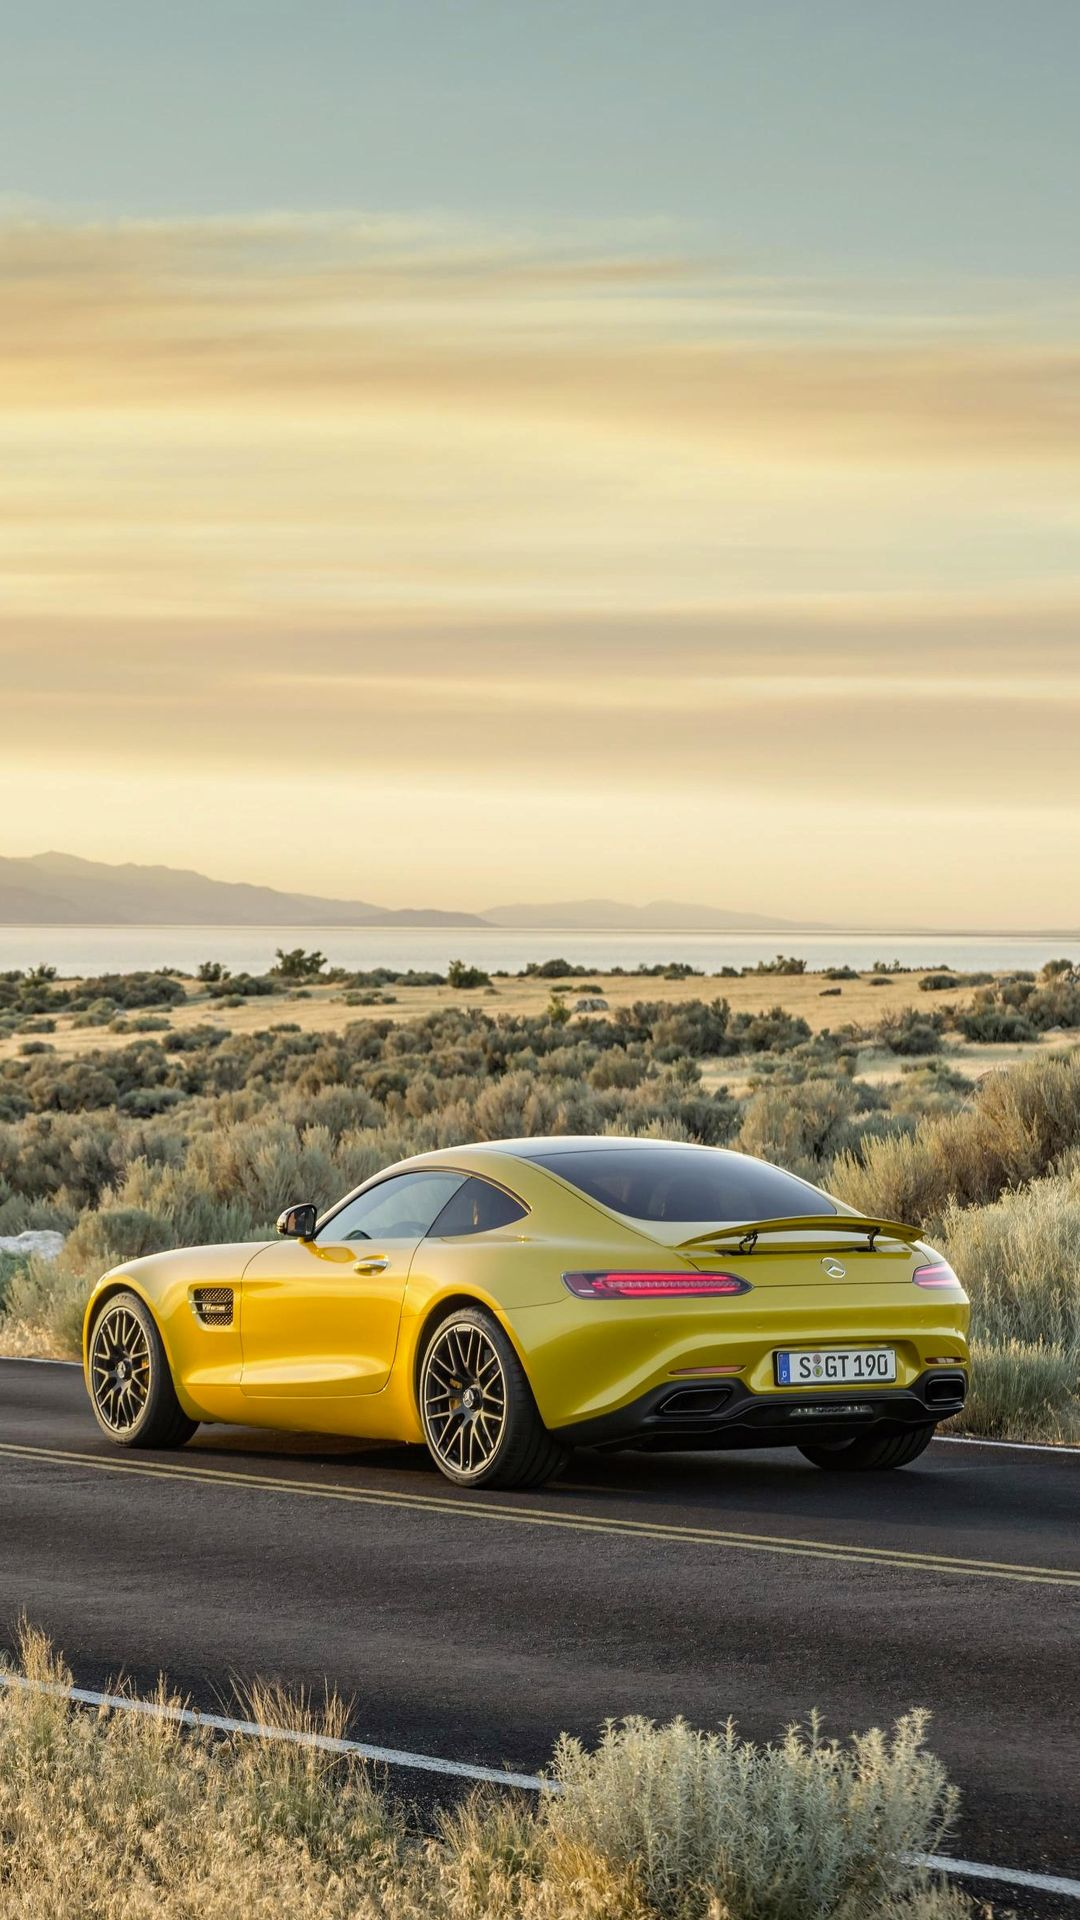 Give Your Desktop And Mobile A Mercedes Makeover With These Gorgeous Amg Gt Wallpapers